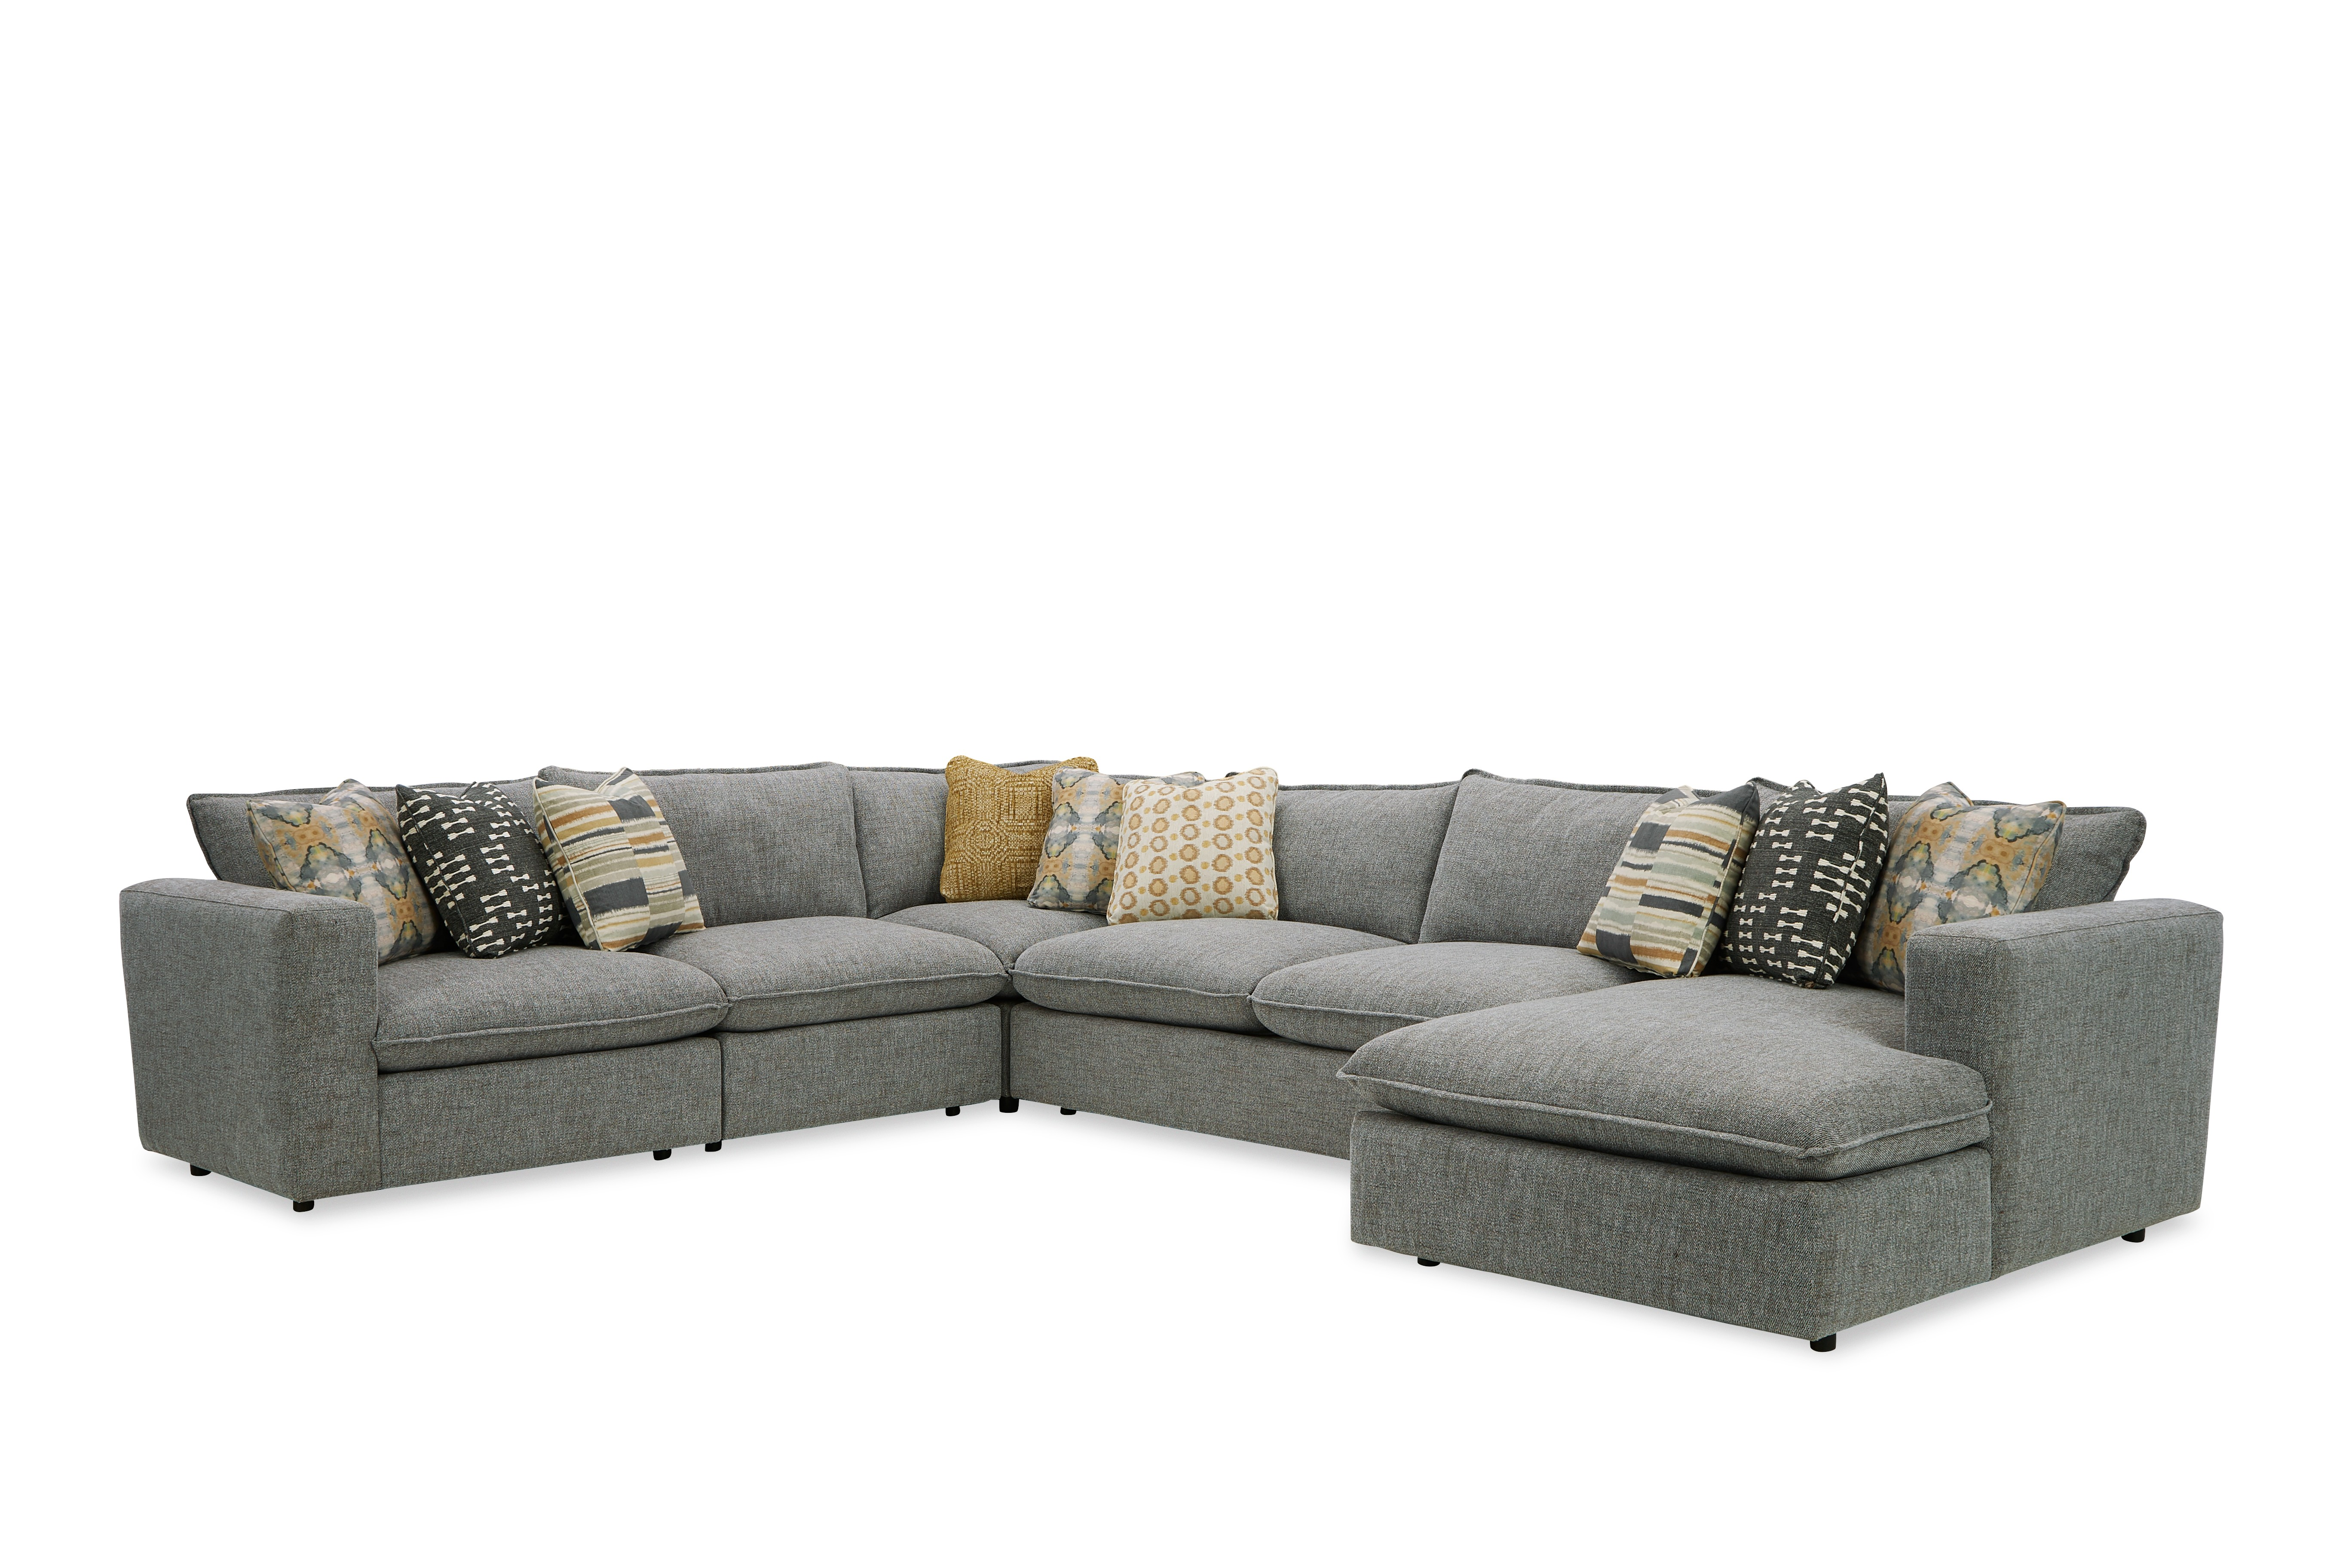 712741BD Sectional Sofa with Large Chaise by Craftmaster at Esprit Decor Home Furnishings